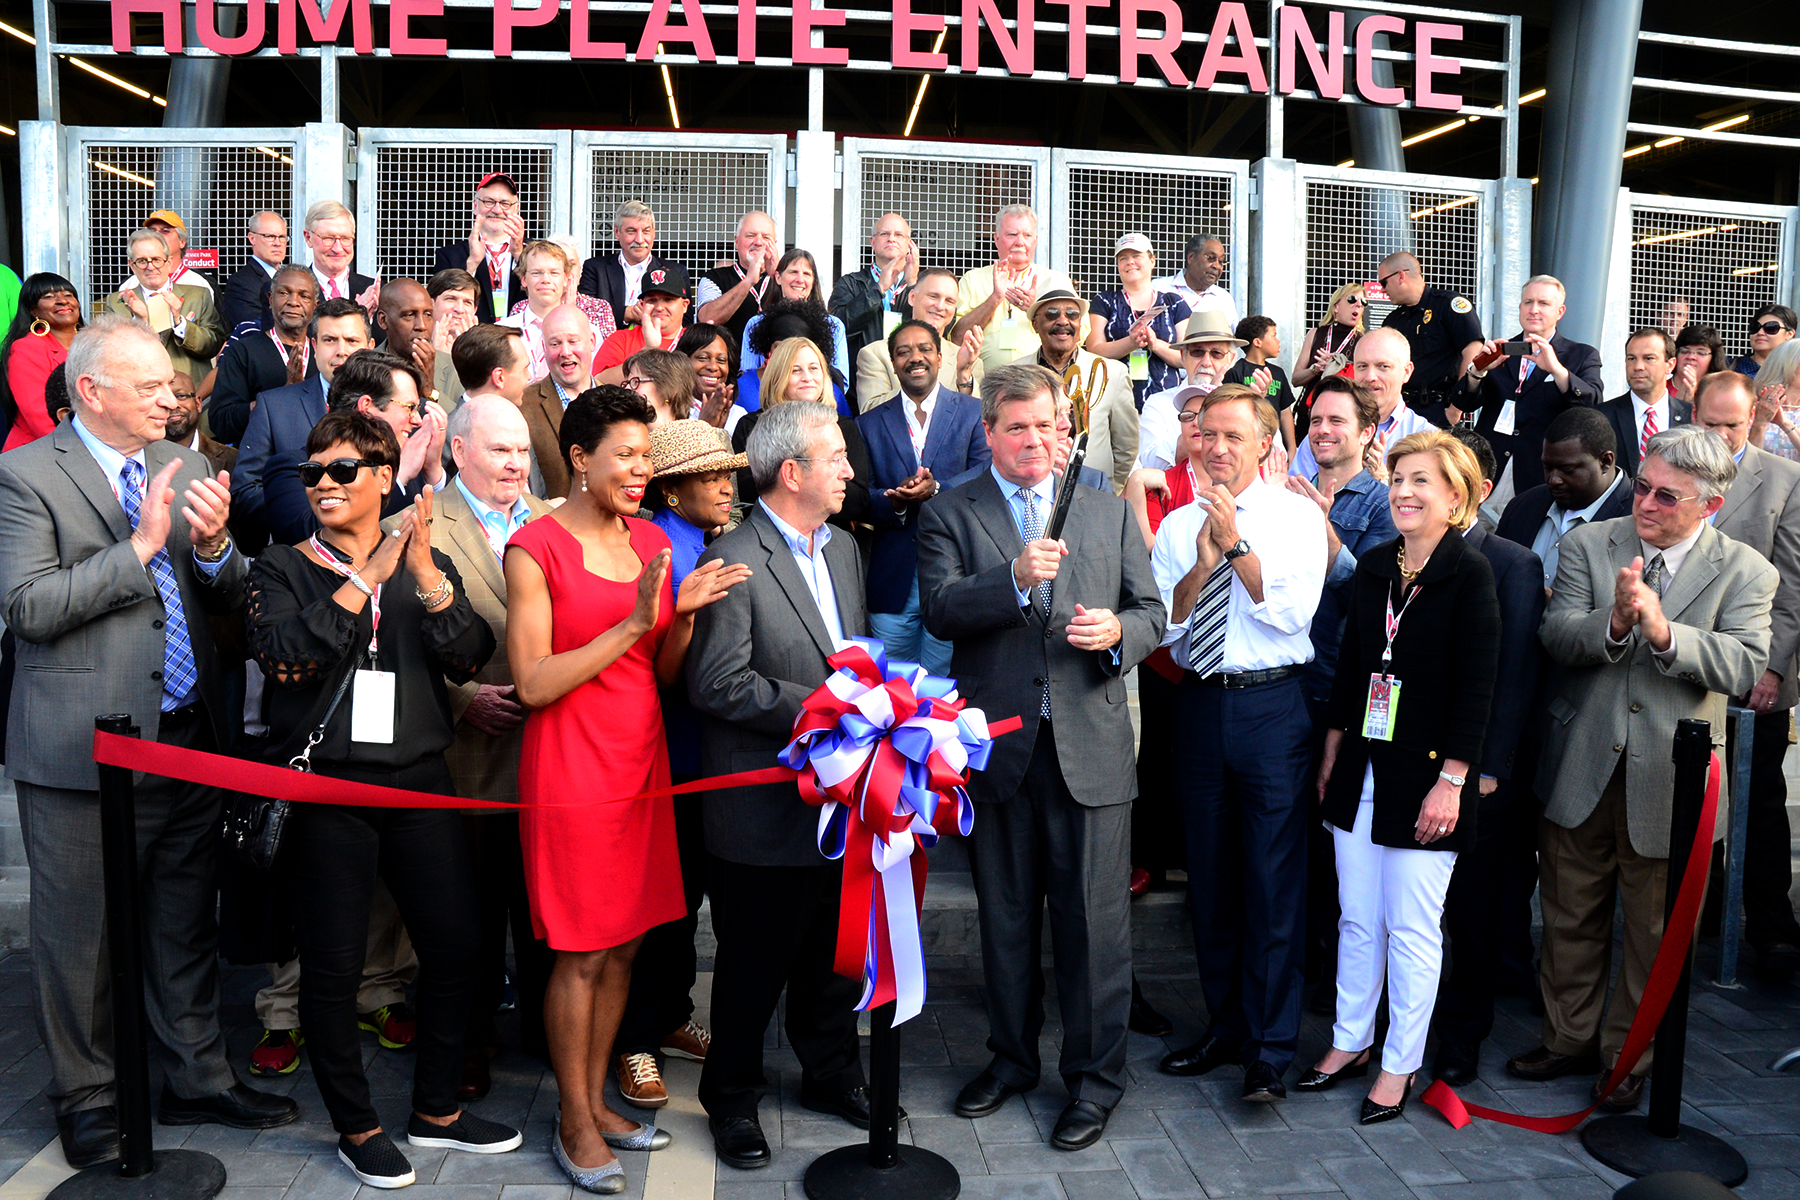 Former Mayor Karl Deal celebrates the Grand Opening after the Ceremonial Ribbon Cutting with Owner Frank Ward, Governor Bill Haslam, First Tennessee President-Middle Tennessee Region Carol Yochem, Pacific Coast League President Branch Rickey and other esteemed city and baseball dignitaries.